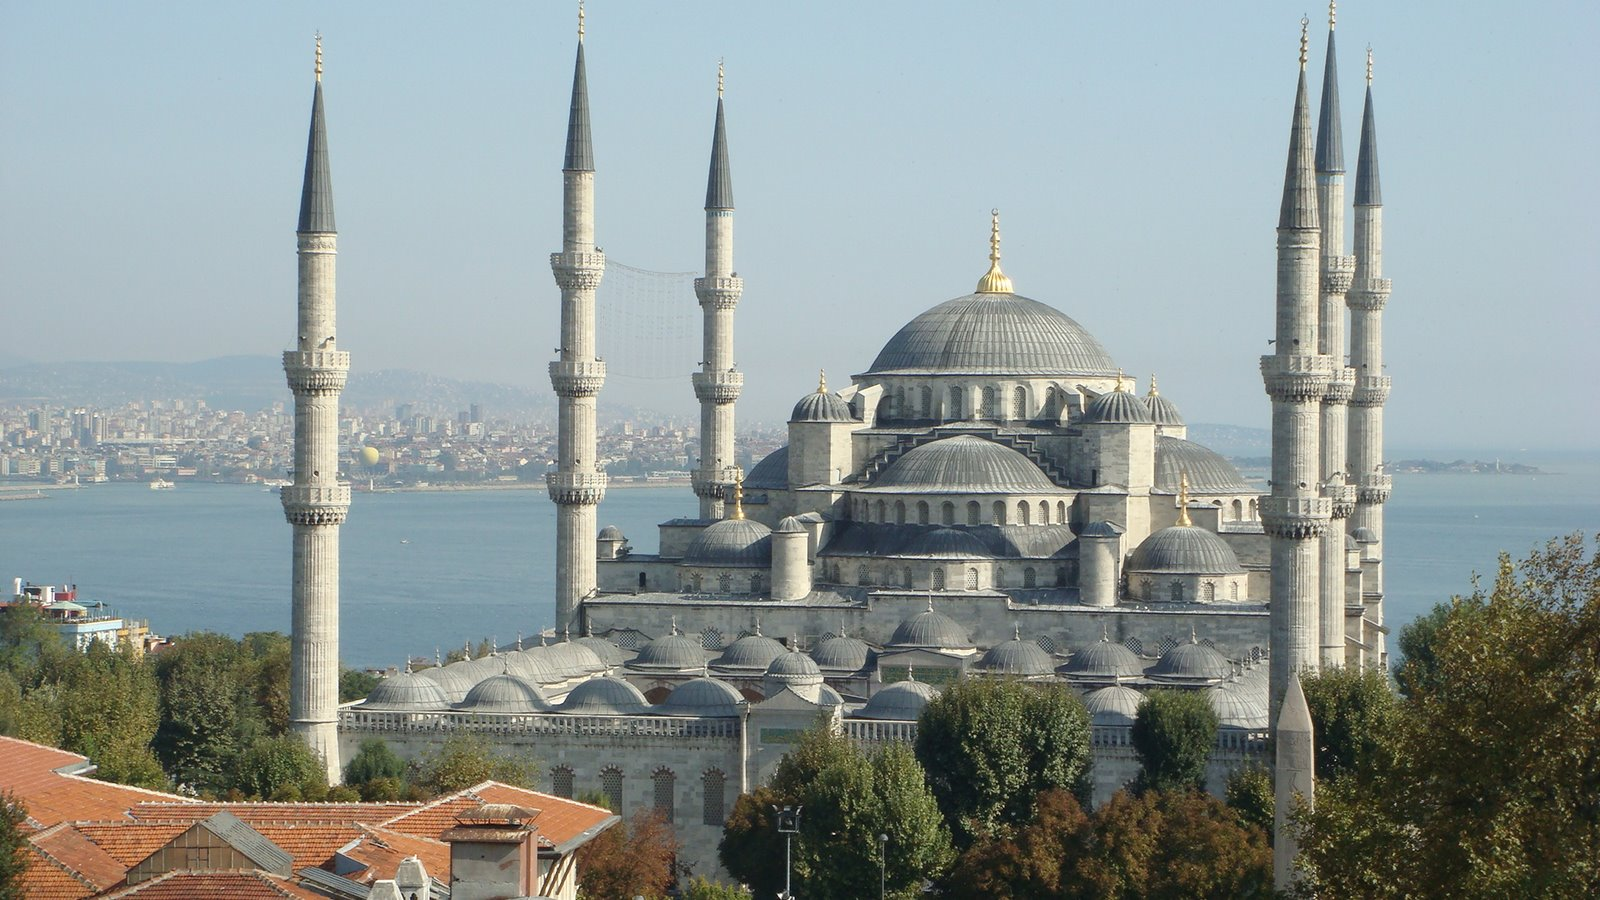 Sultan-Ahmed-Mosque-Photo.png.jpg